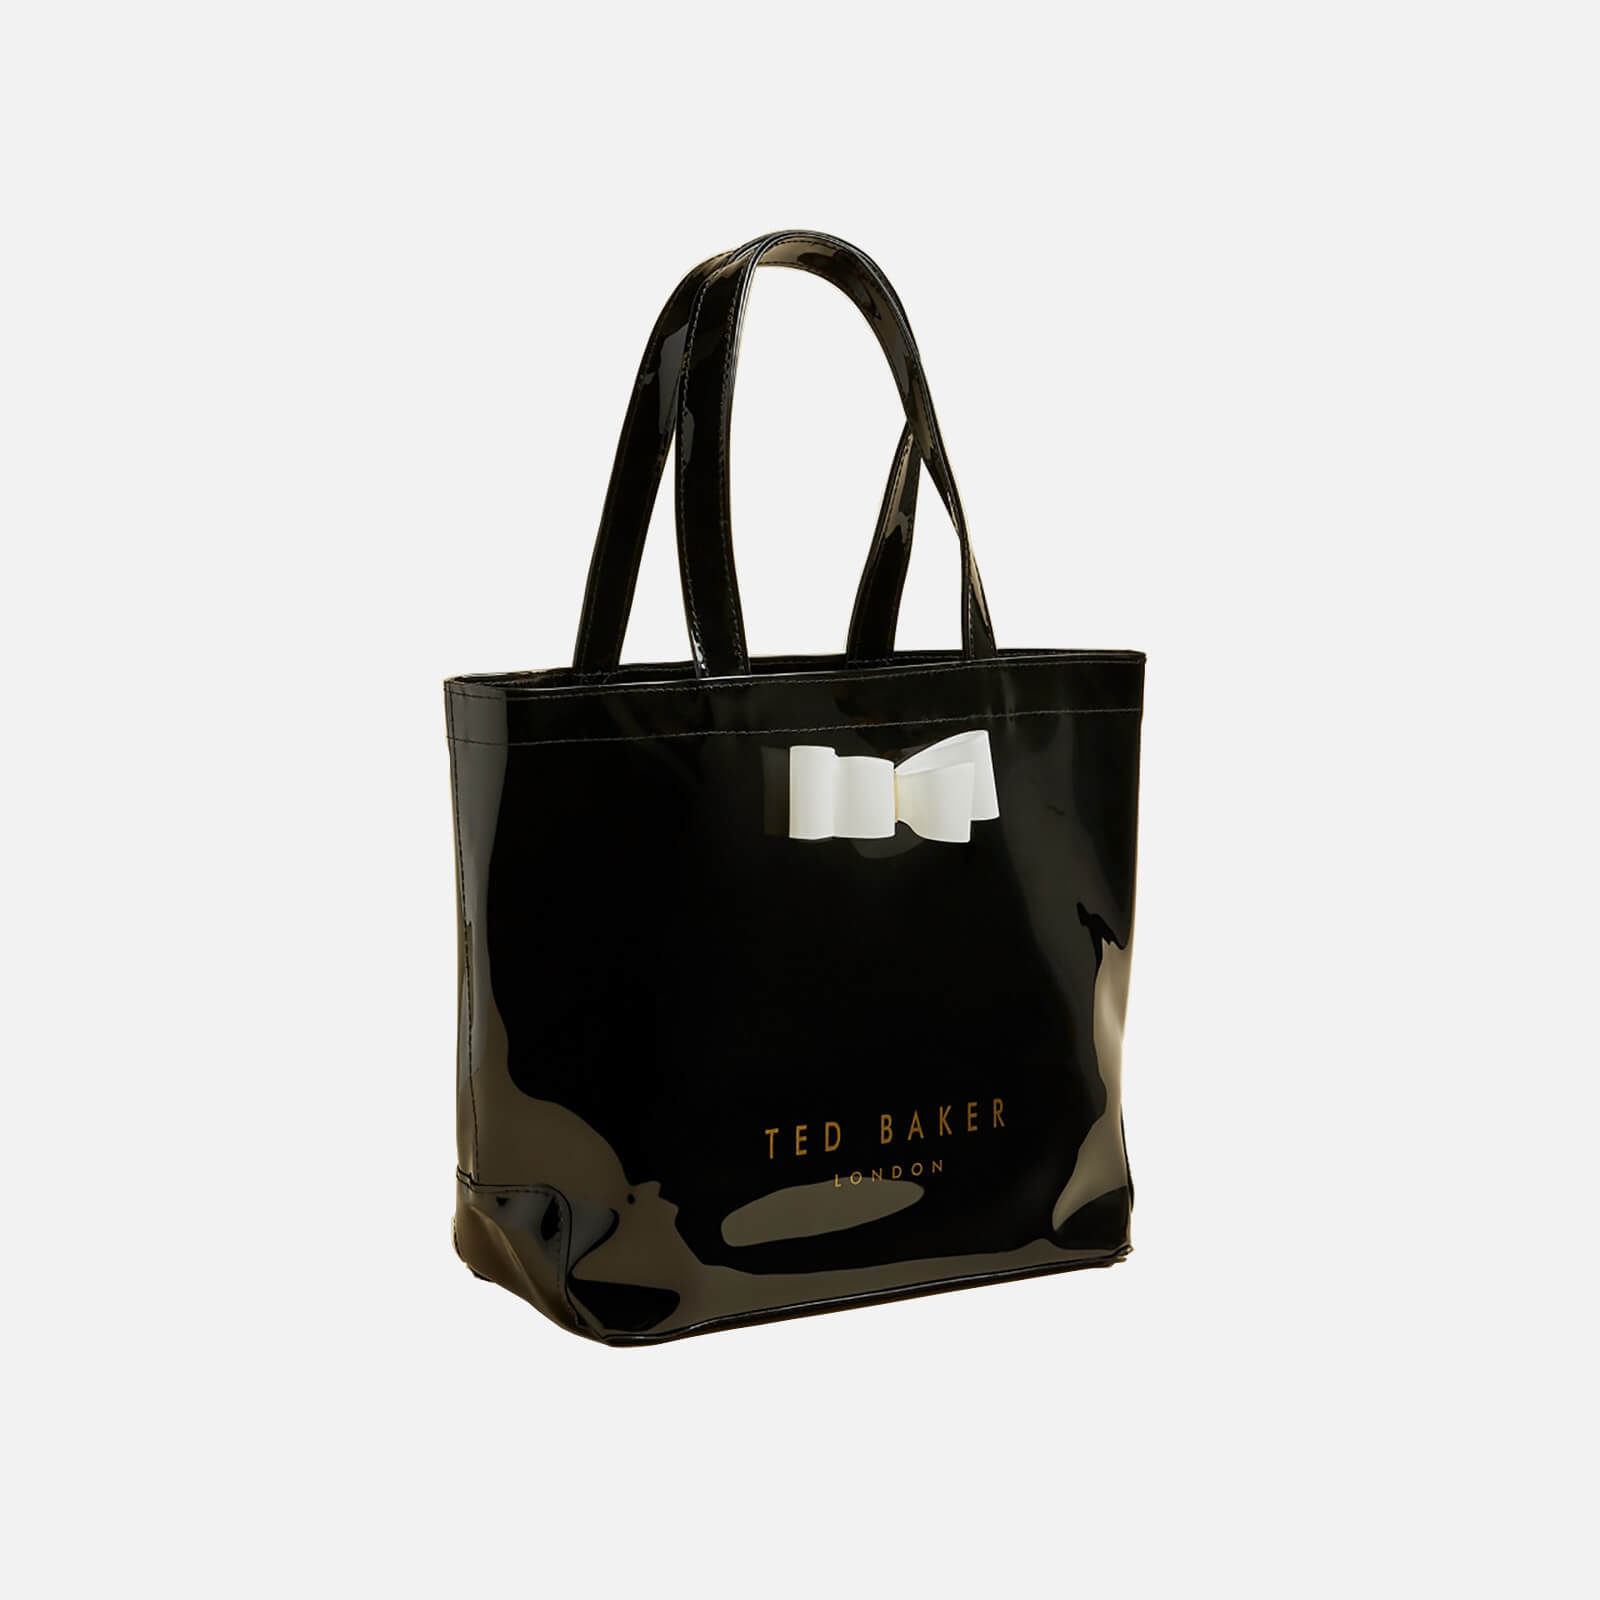 ted baker women's haricon small tote bag - black